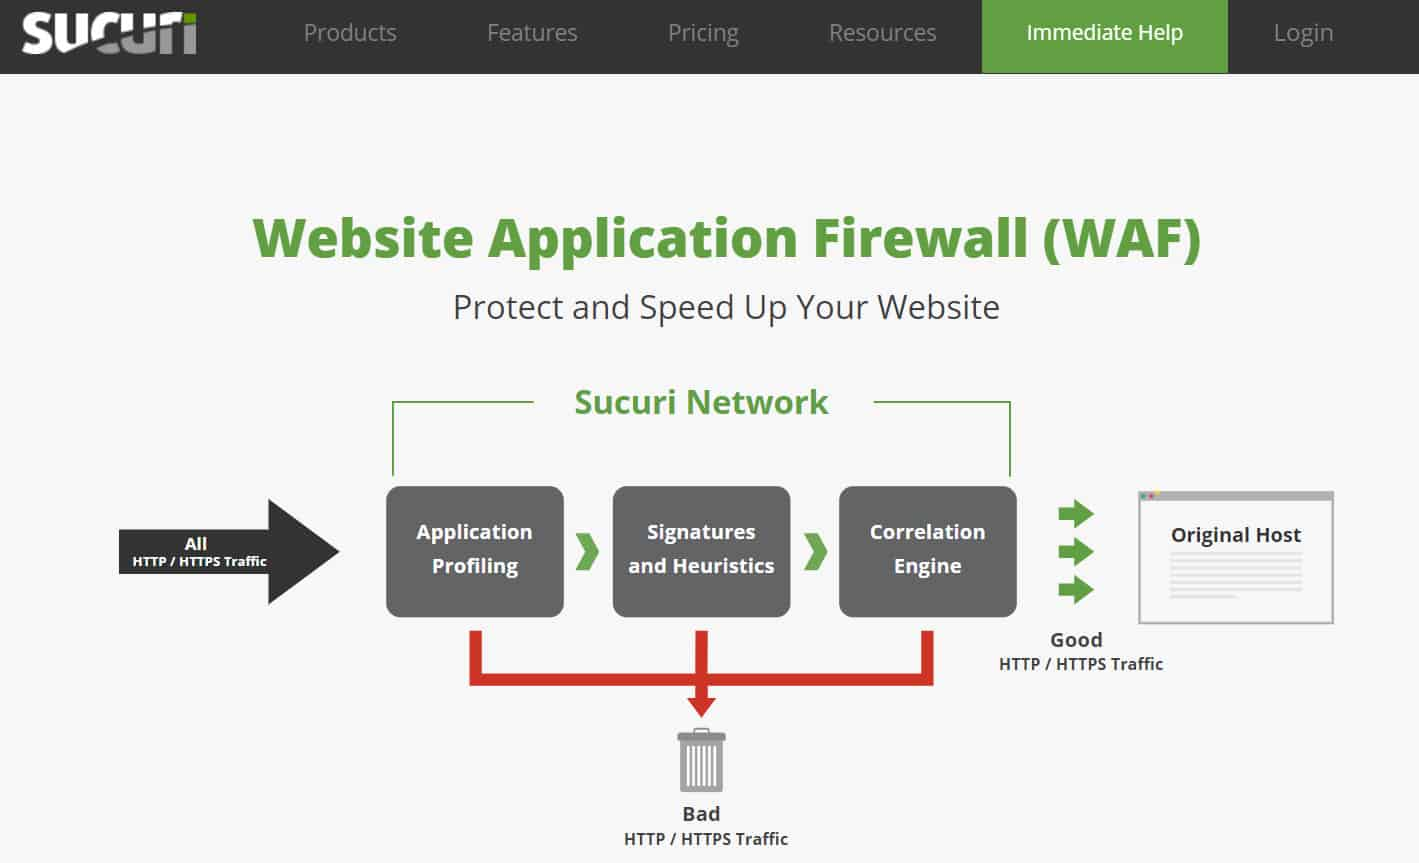 Sucuri Website Firewall